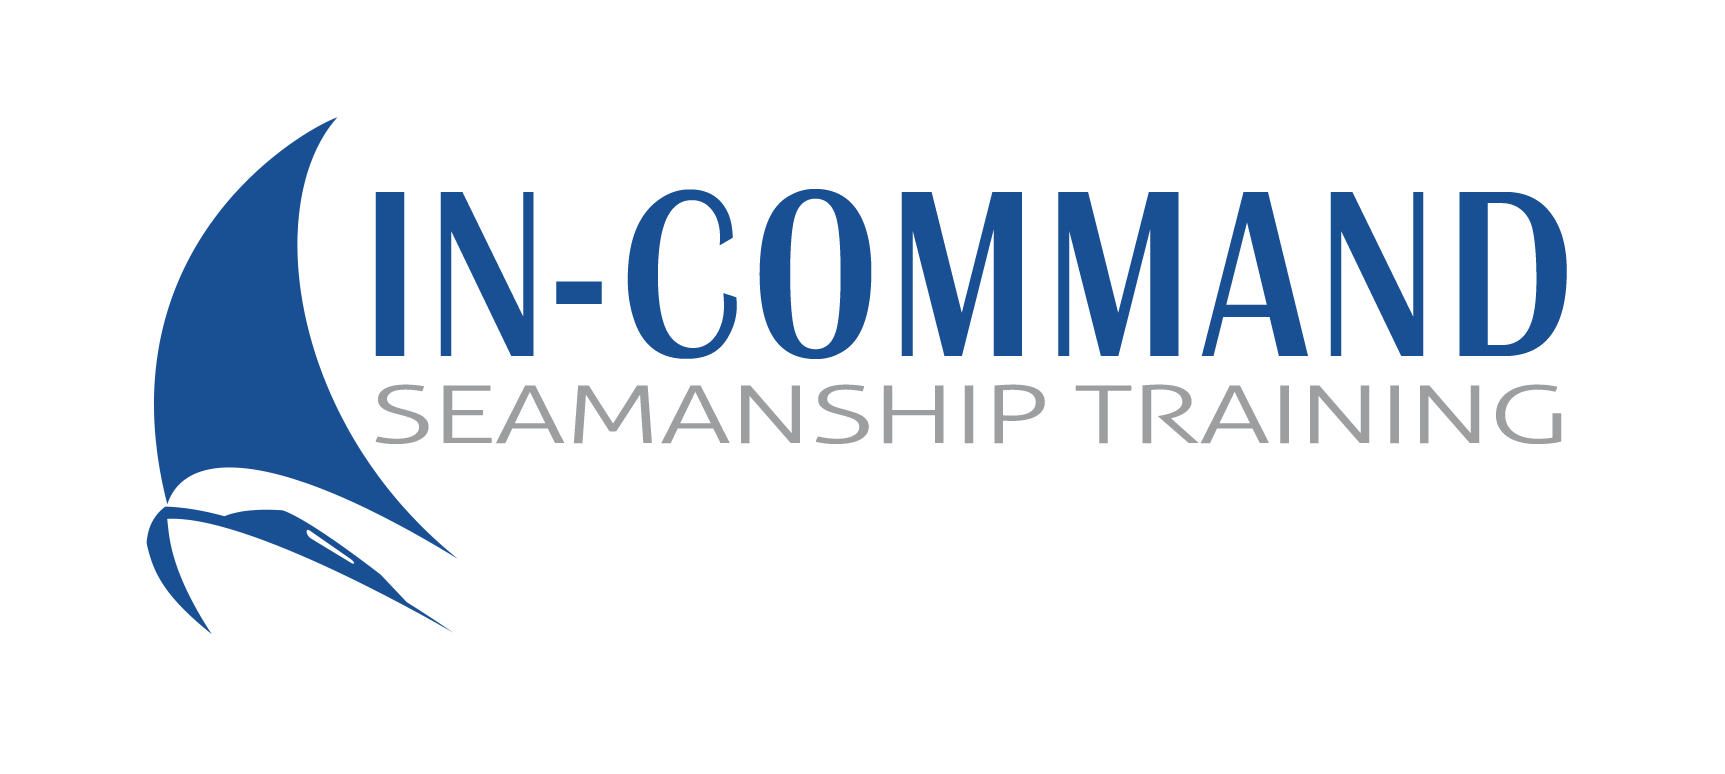 STATE REQUIREMENTS - In-Command